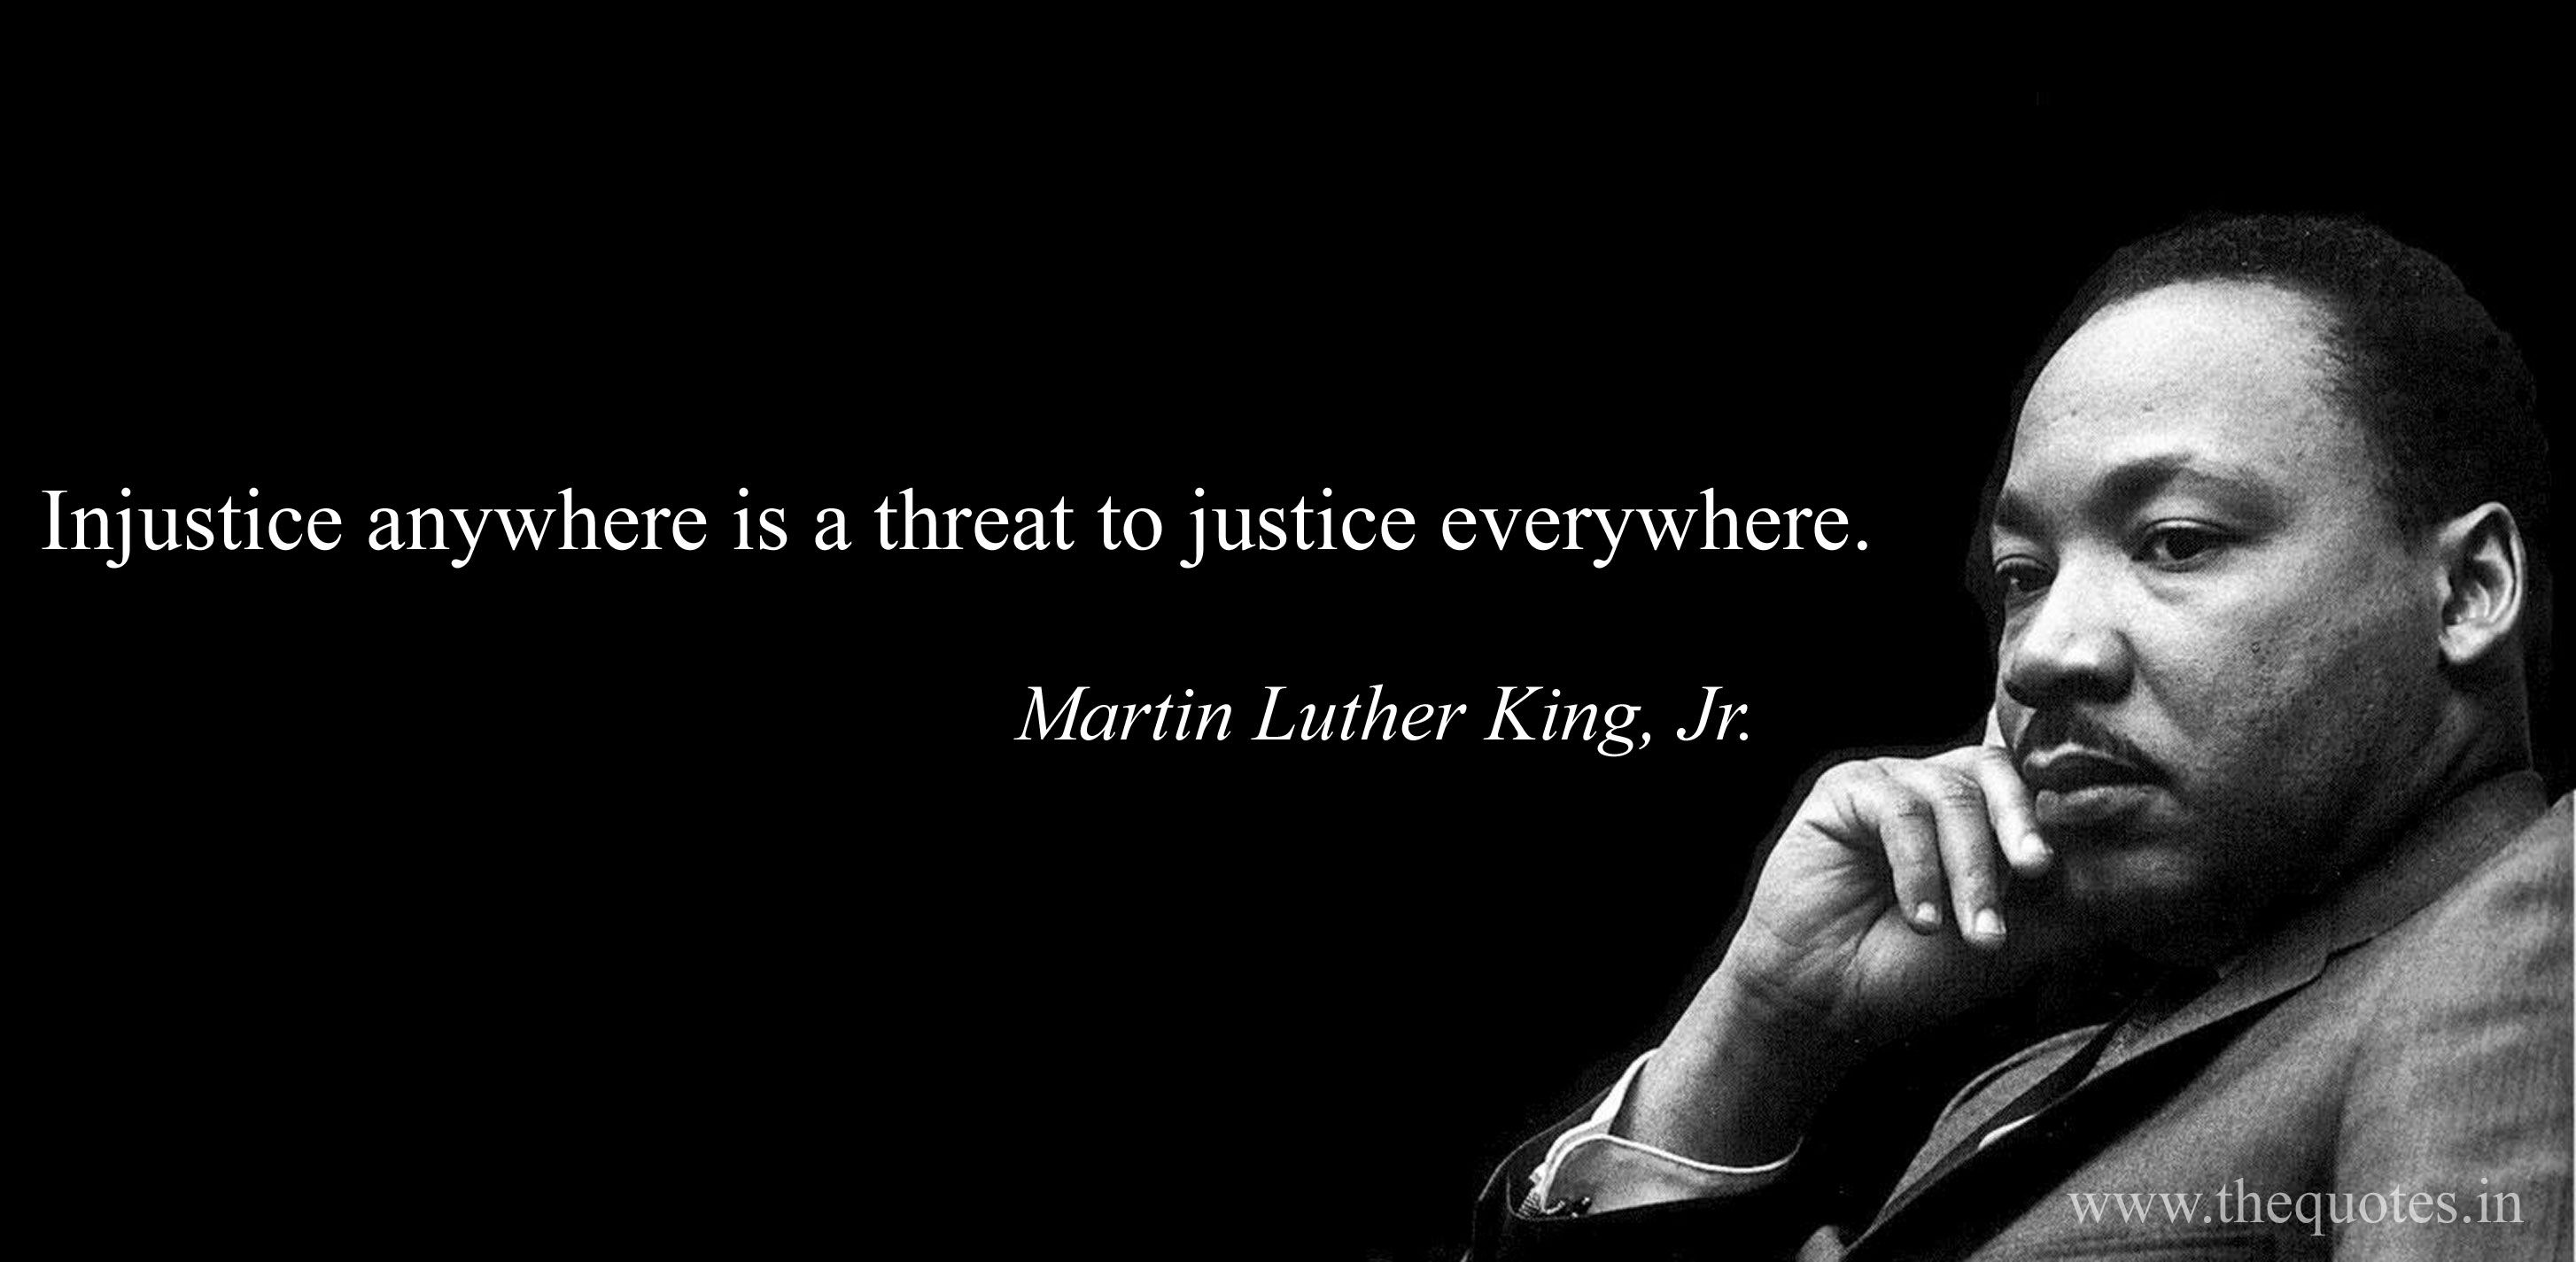 Injustice Anywhere Is A Threat To Justice Everywhere Martin Luther King Jr Martin Luther King Martin Luther Luther